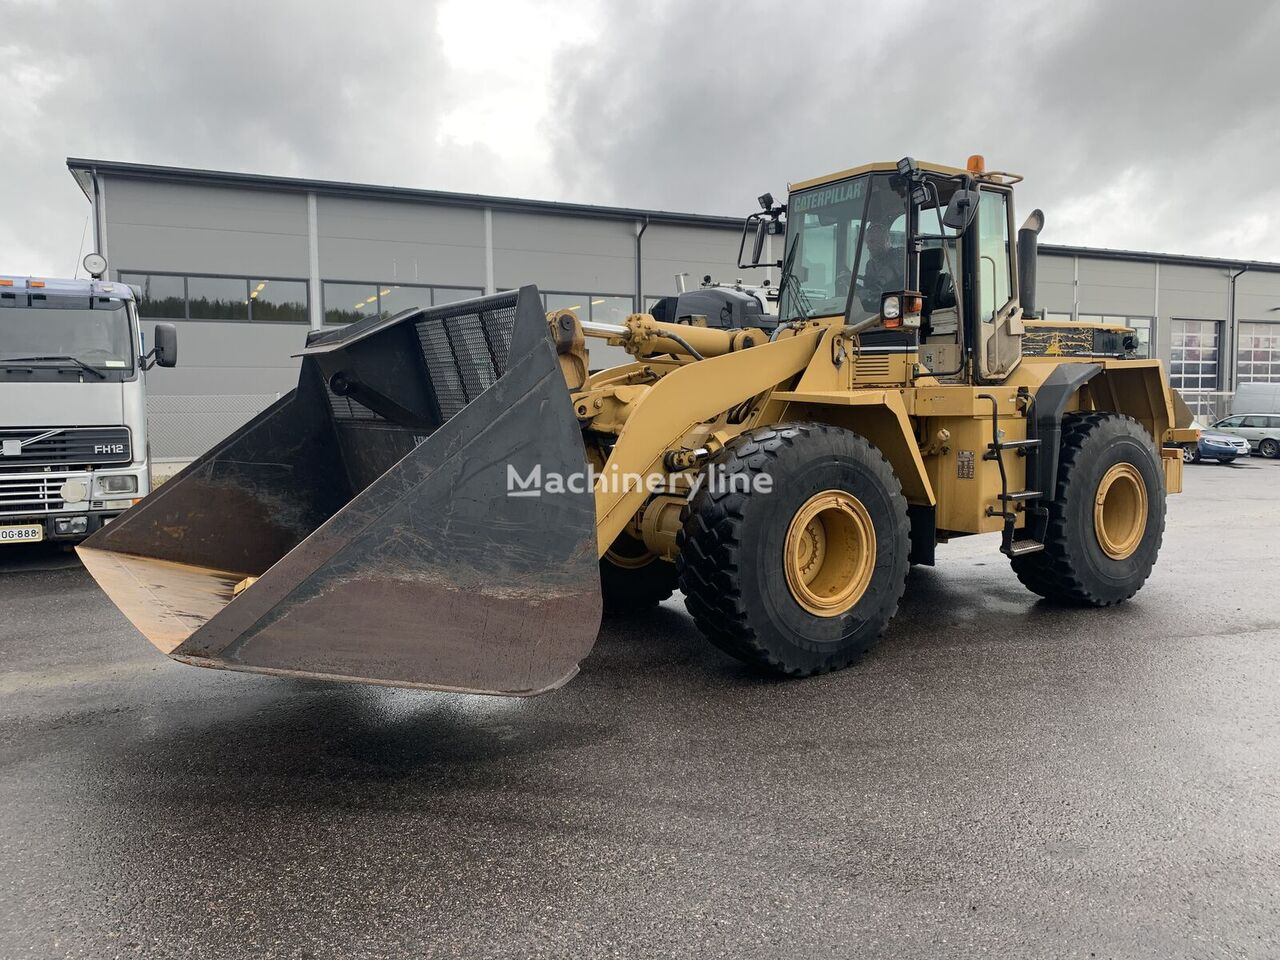 CATERPILLAR 950 F II only 9000 hours Super Condition wheel loader